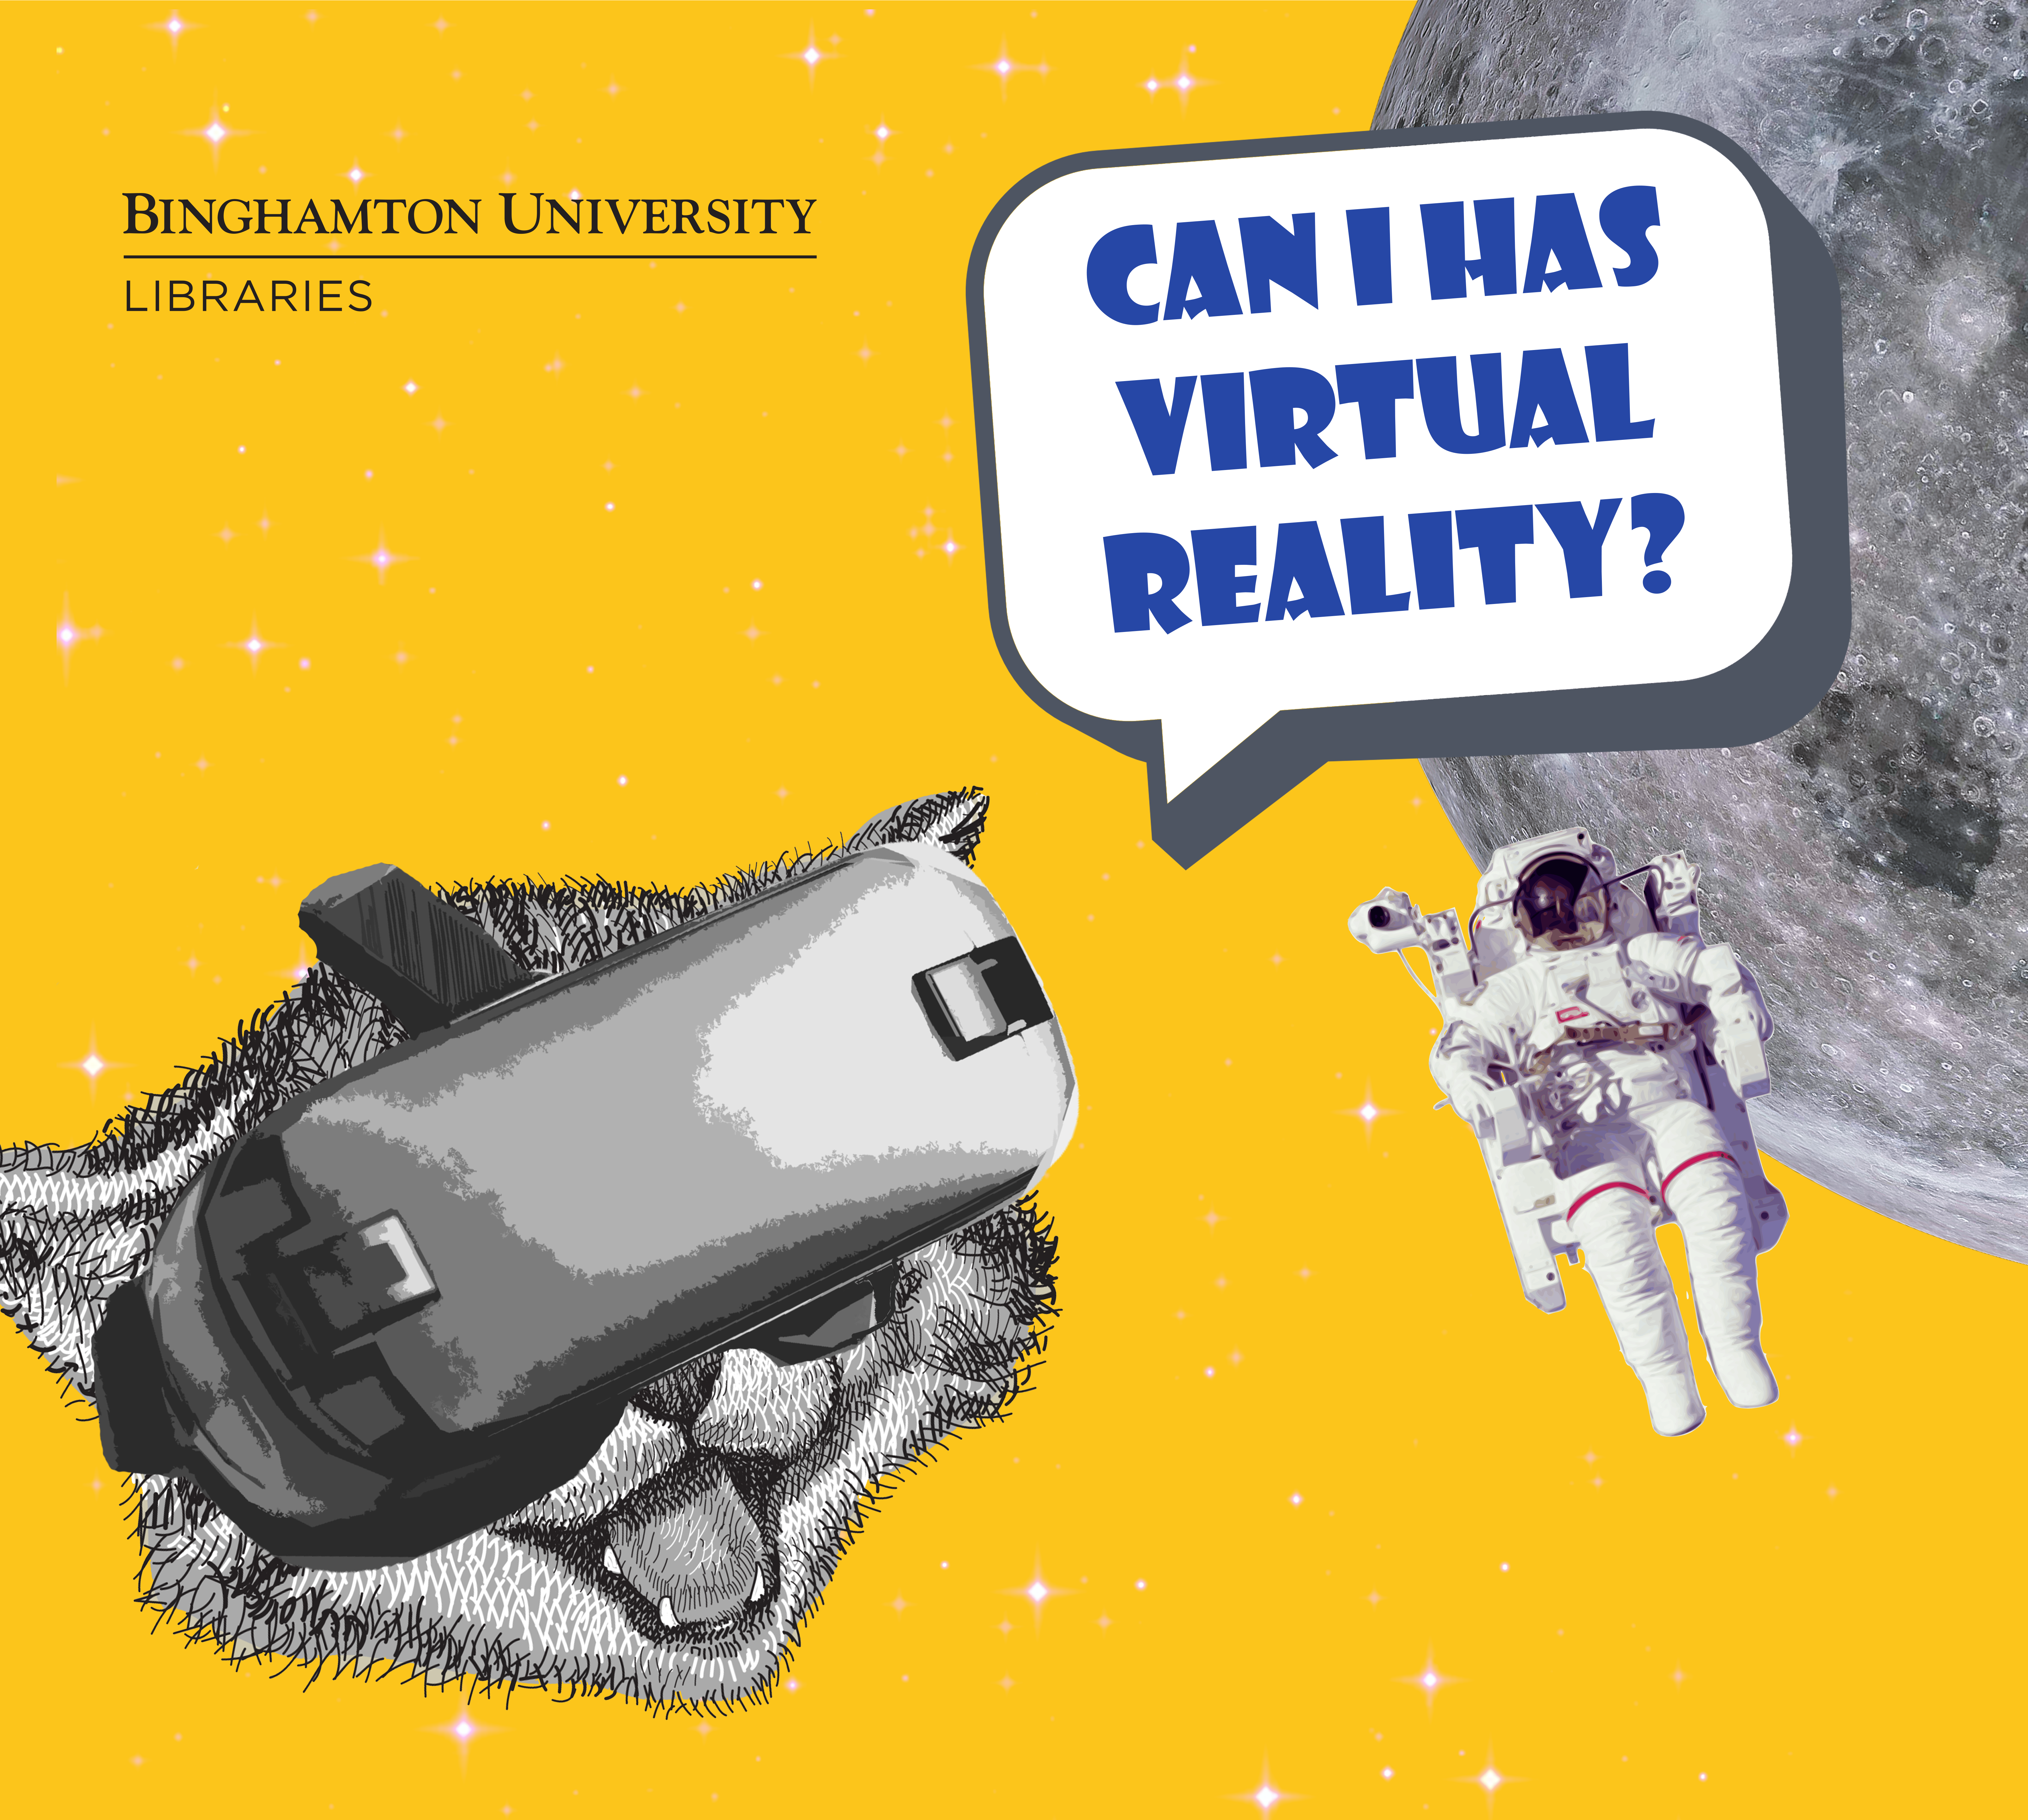 Can I Has Virtual Reality? Science Library Exhibit Grand Opening & VR Open House